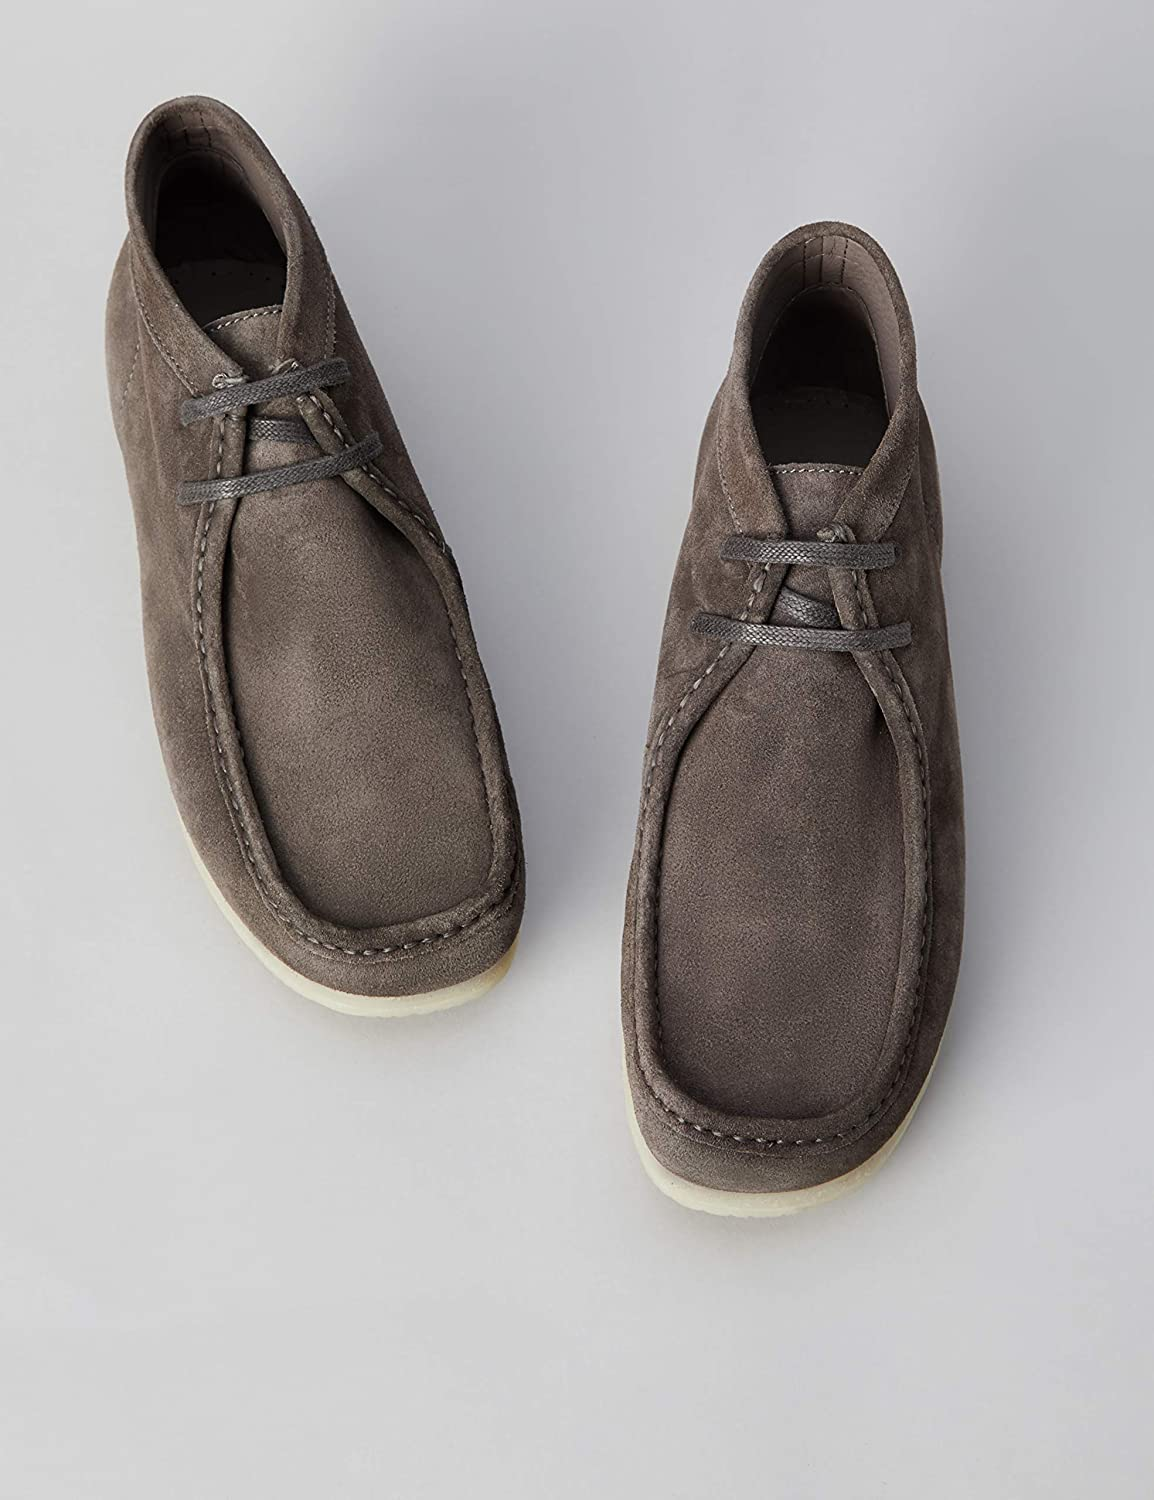 Bottes /& Bottines Classiques Homme find Leather Wallabee Mocassin